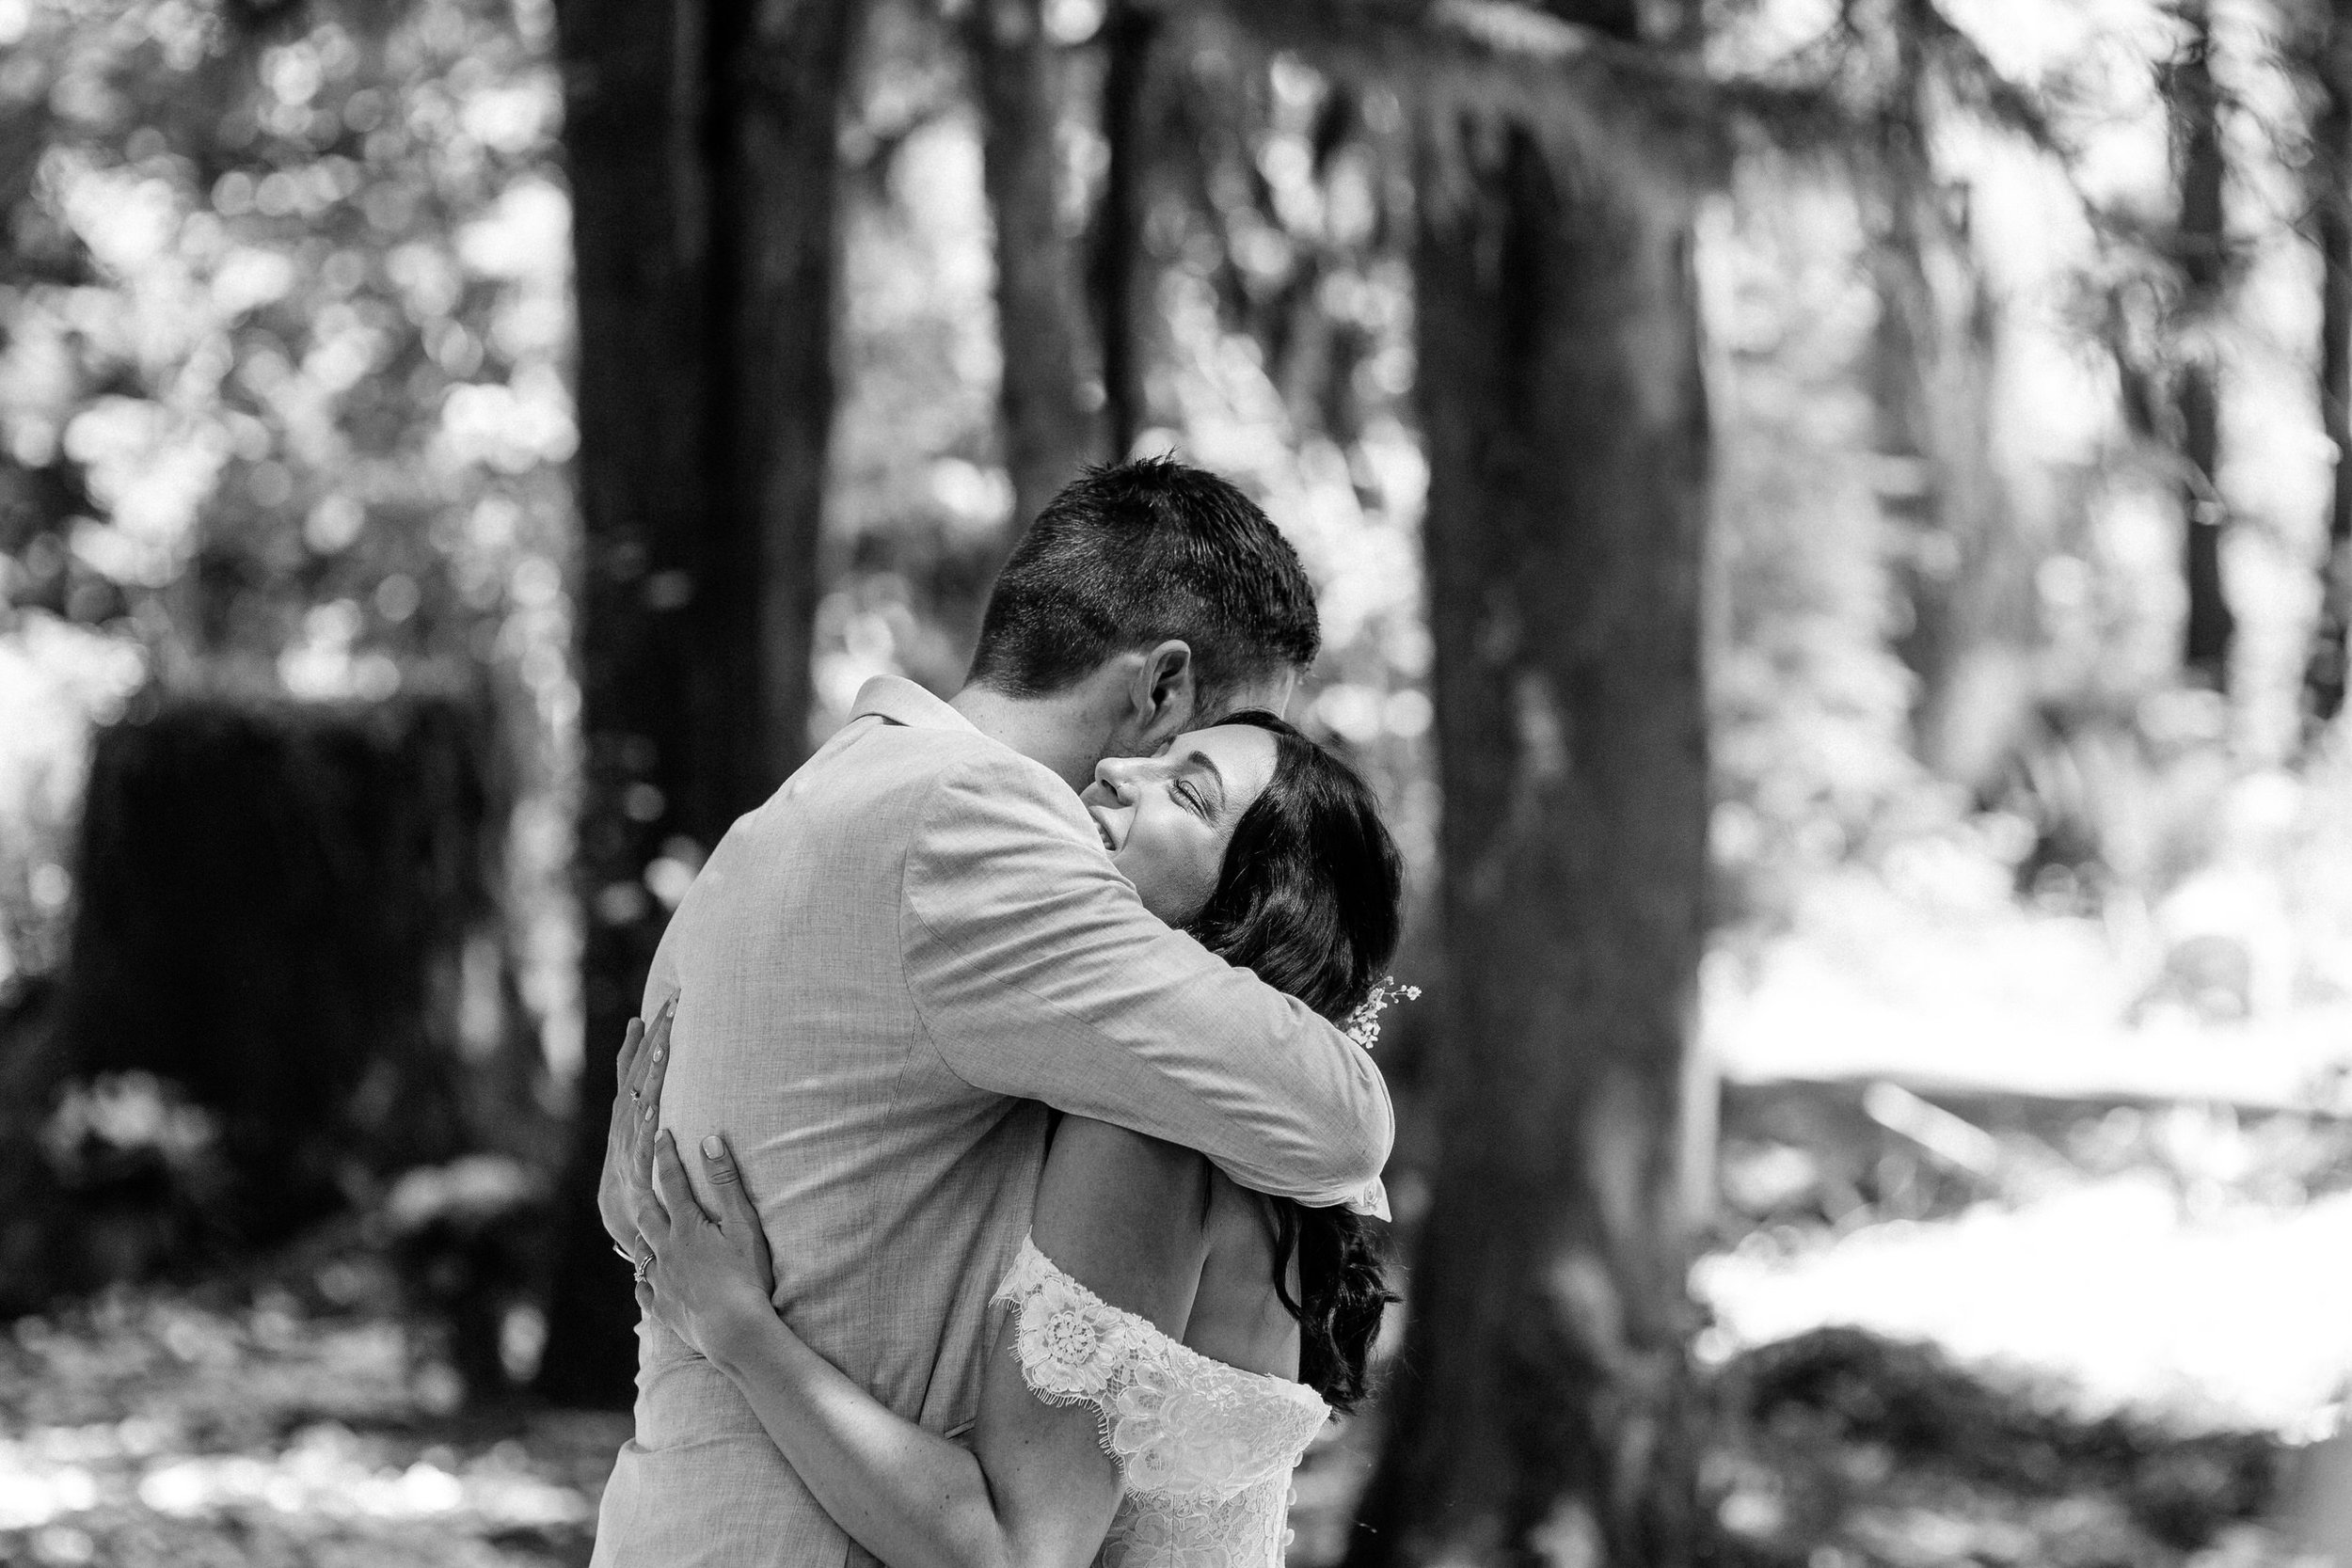 Mt hood wedding 3.jpg